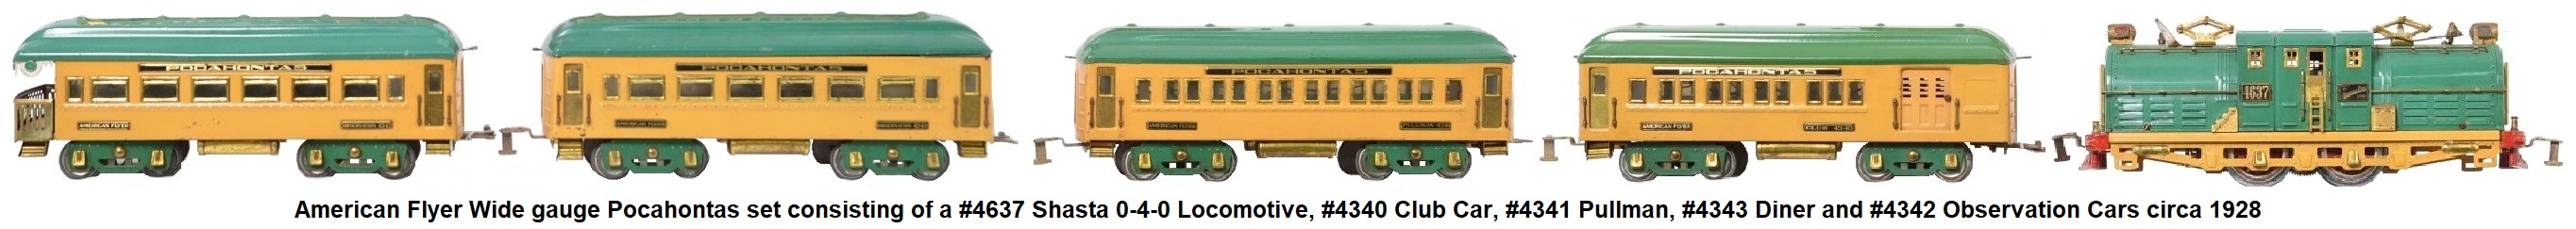 American Flyer Wide gauge Pocahontas set consisting of a #4637 Shasta 0-4-0 locomotive, #4340 club, #4341 Pullman and #4342 & #4343 observation cars